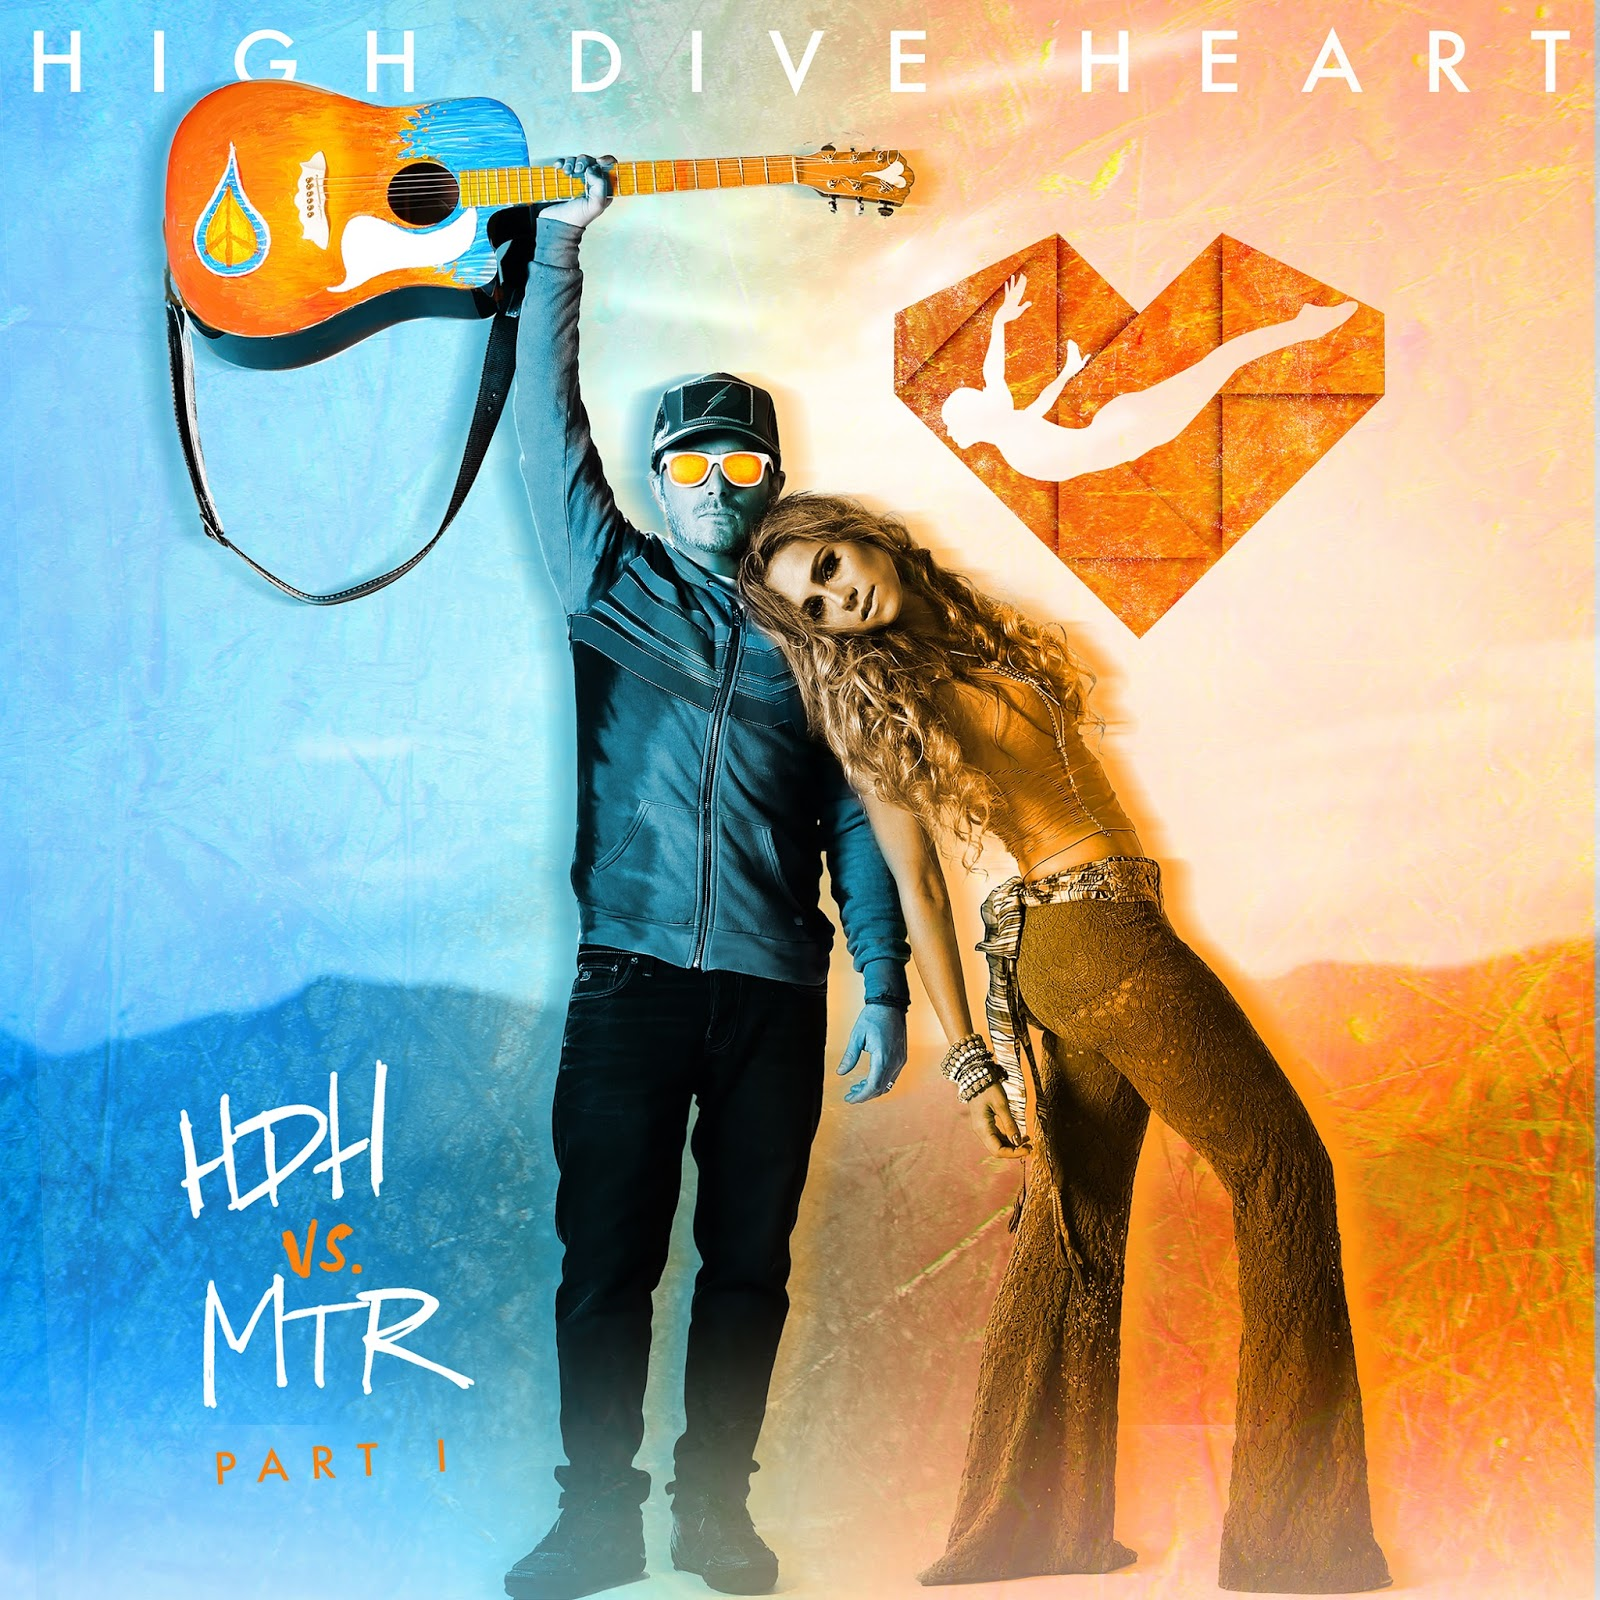 Featured Artist - High Dive Heart